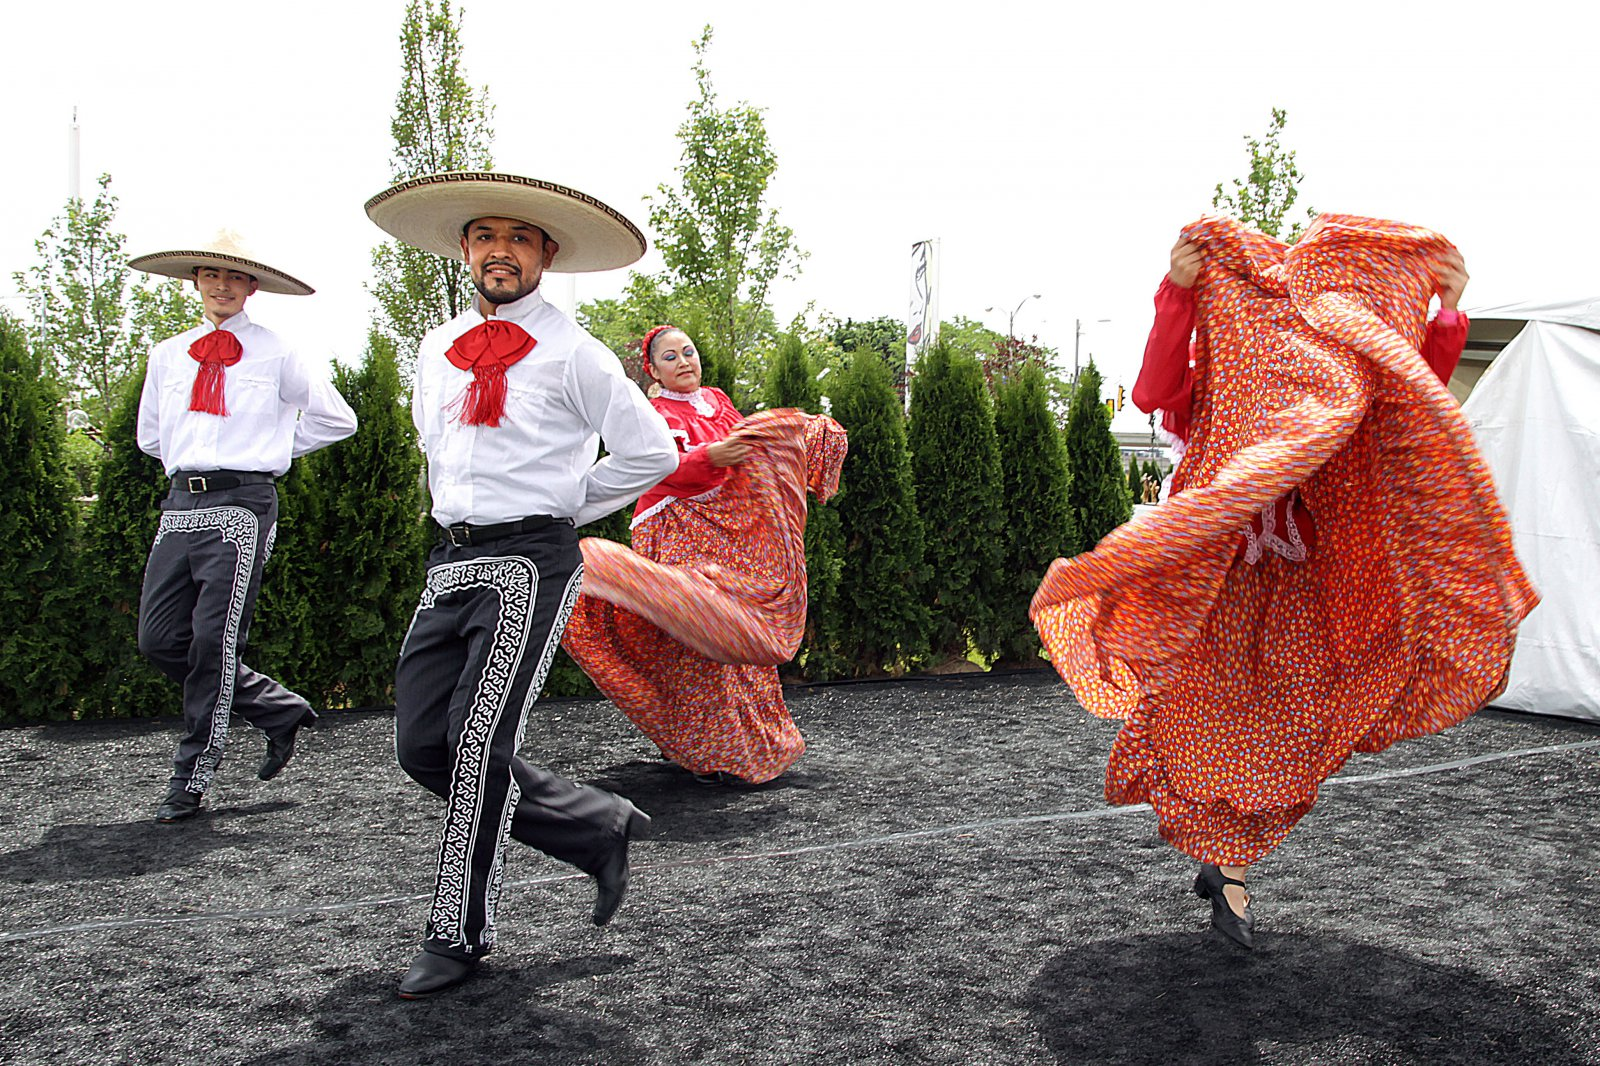 Dance Academy of Mexico, Culture & Diversity Through The Arts